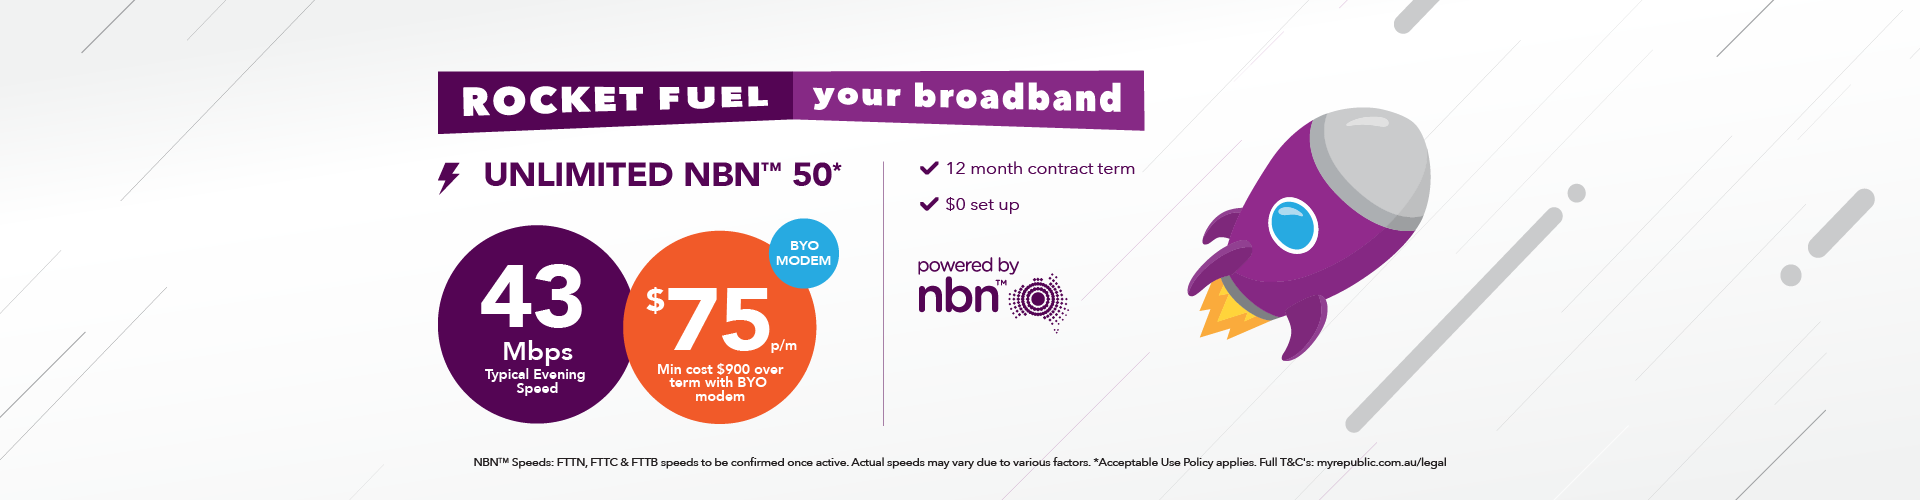 Super-Fast Unlimited NBN Plans | MyRepublic Australia